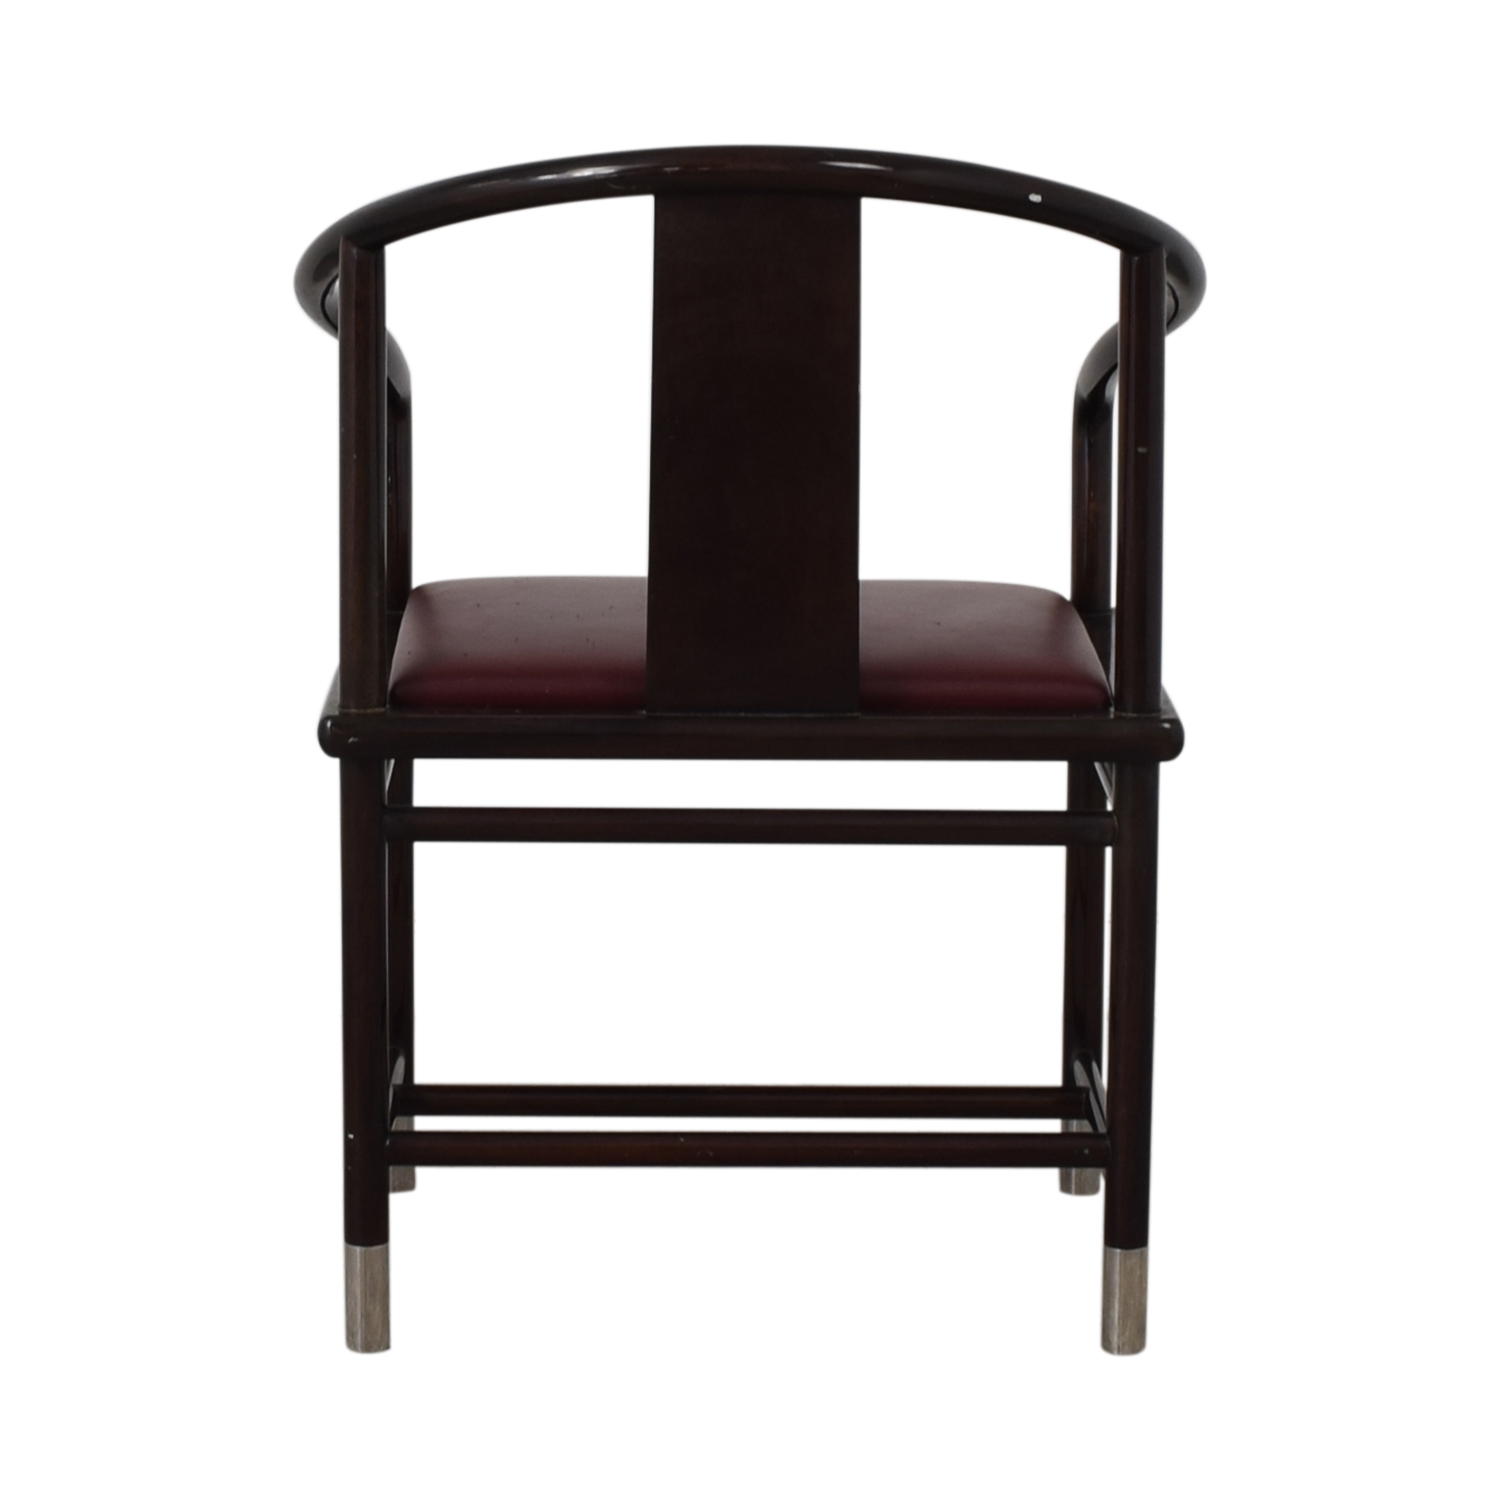 Brueton Brueton Wood and Burgundy Upholstered Accent Chair discount